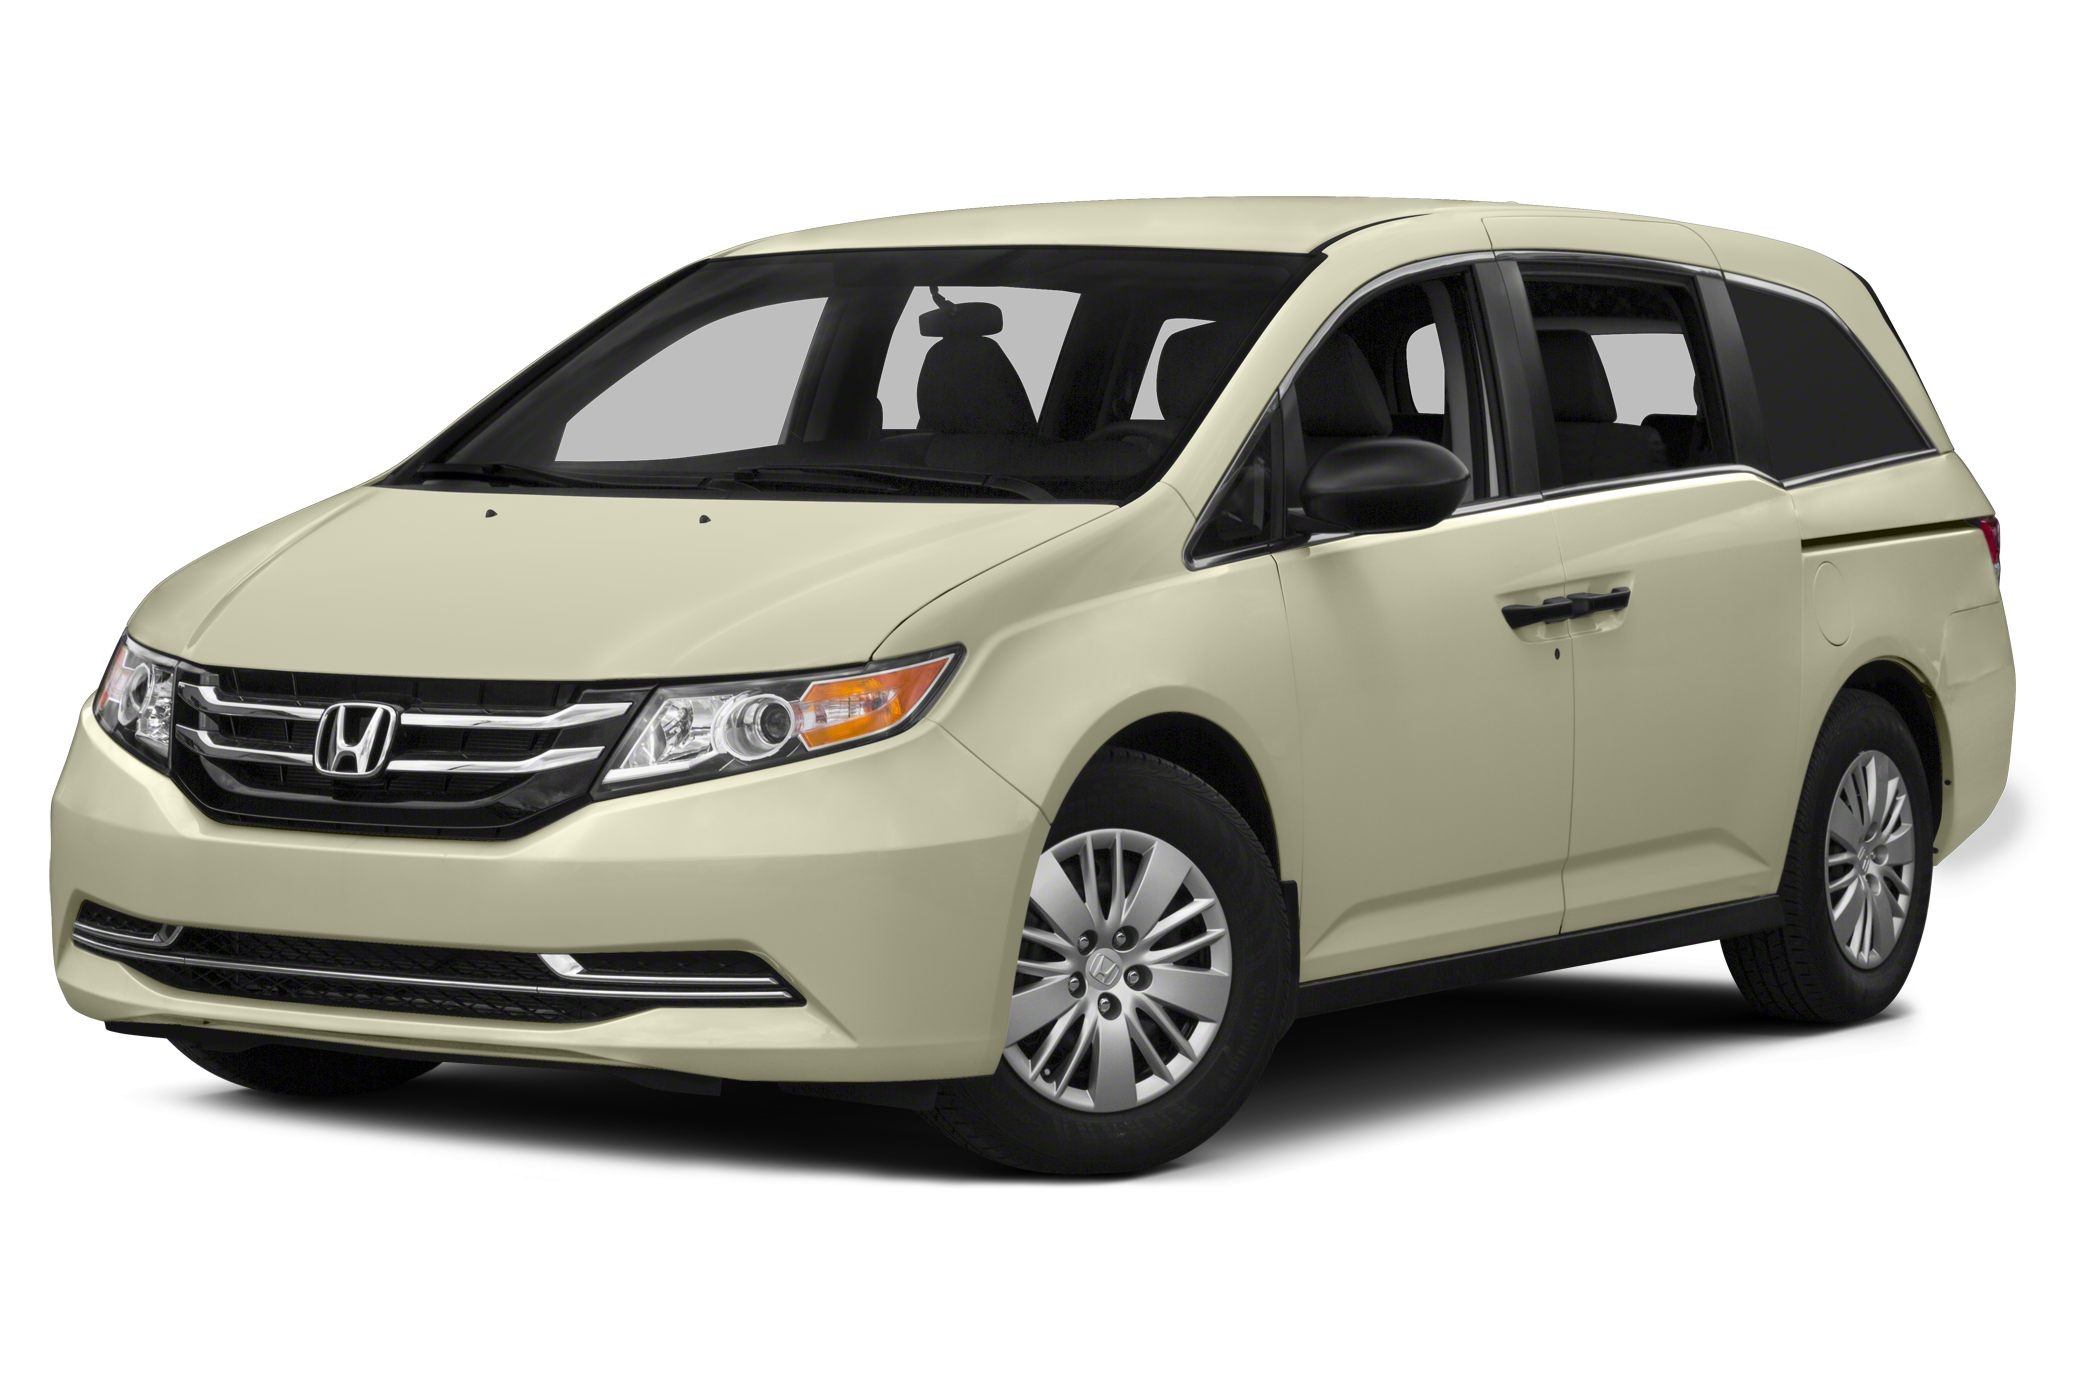 2015 Honda Odyssey LX Minivan for sale in Fredericksburg for $29,855 with 6 miles.